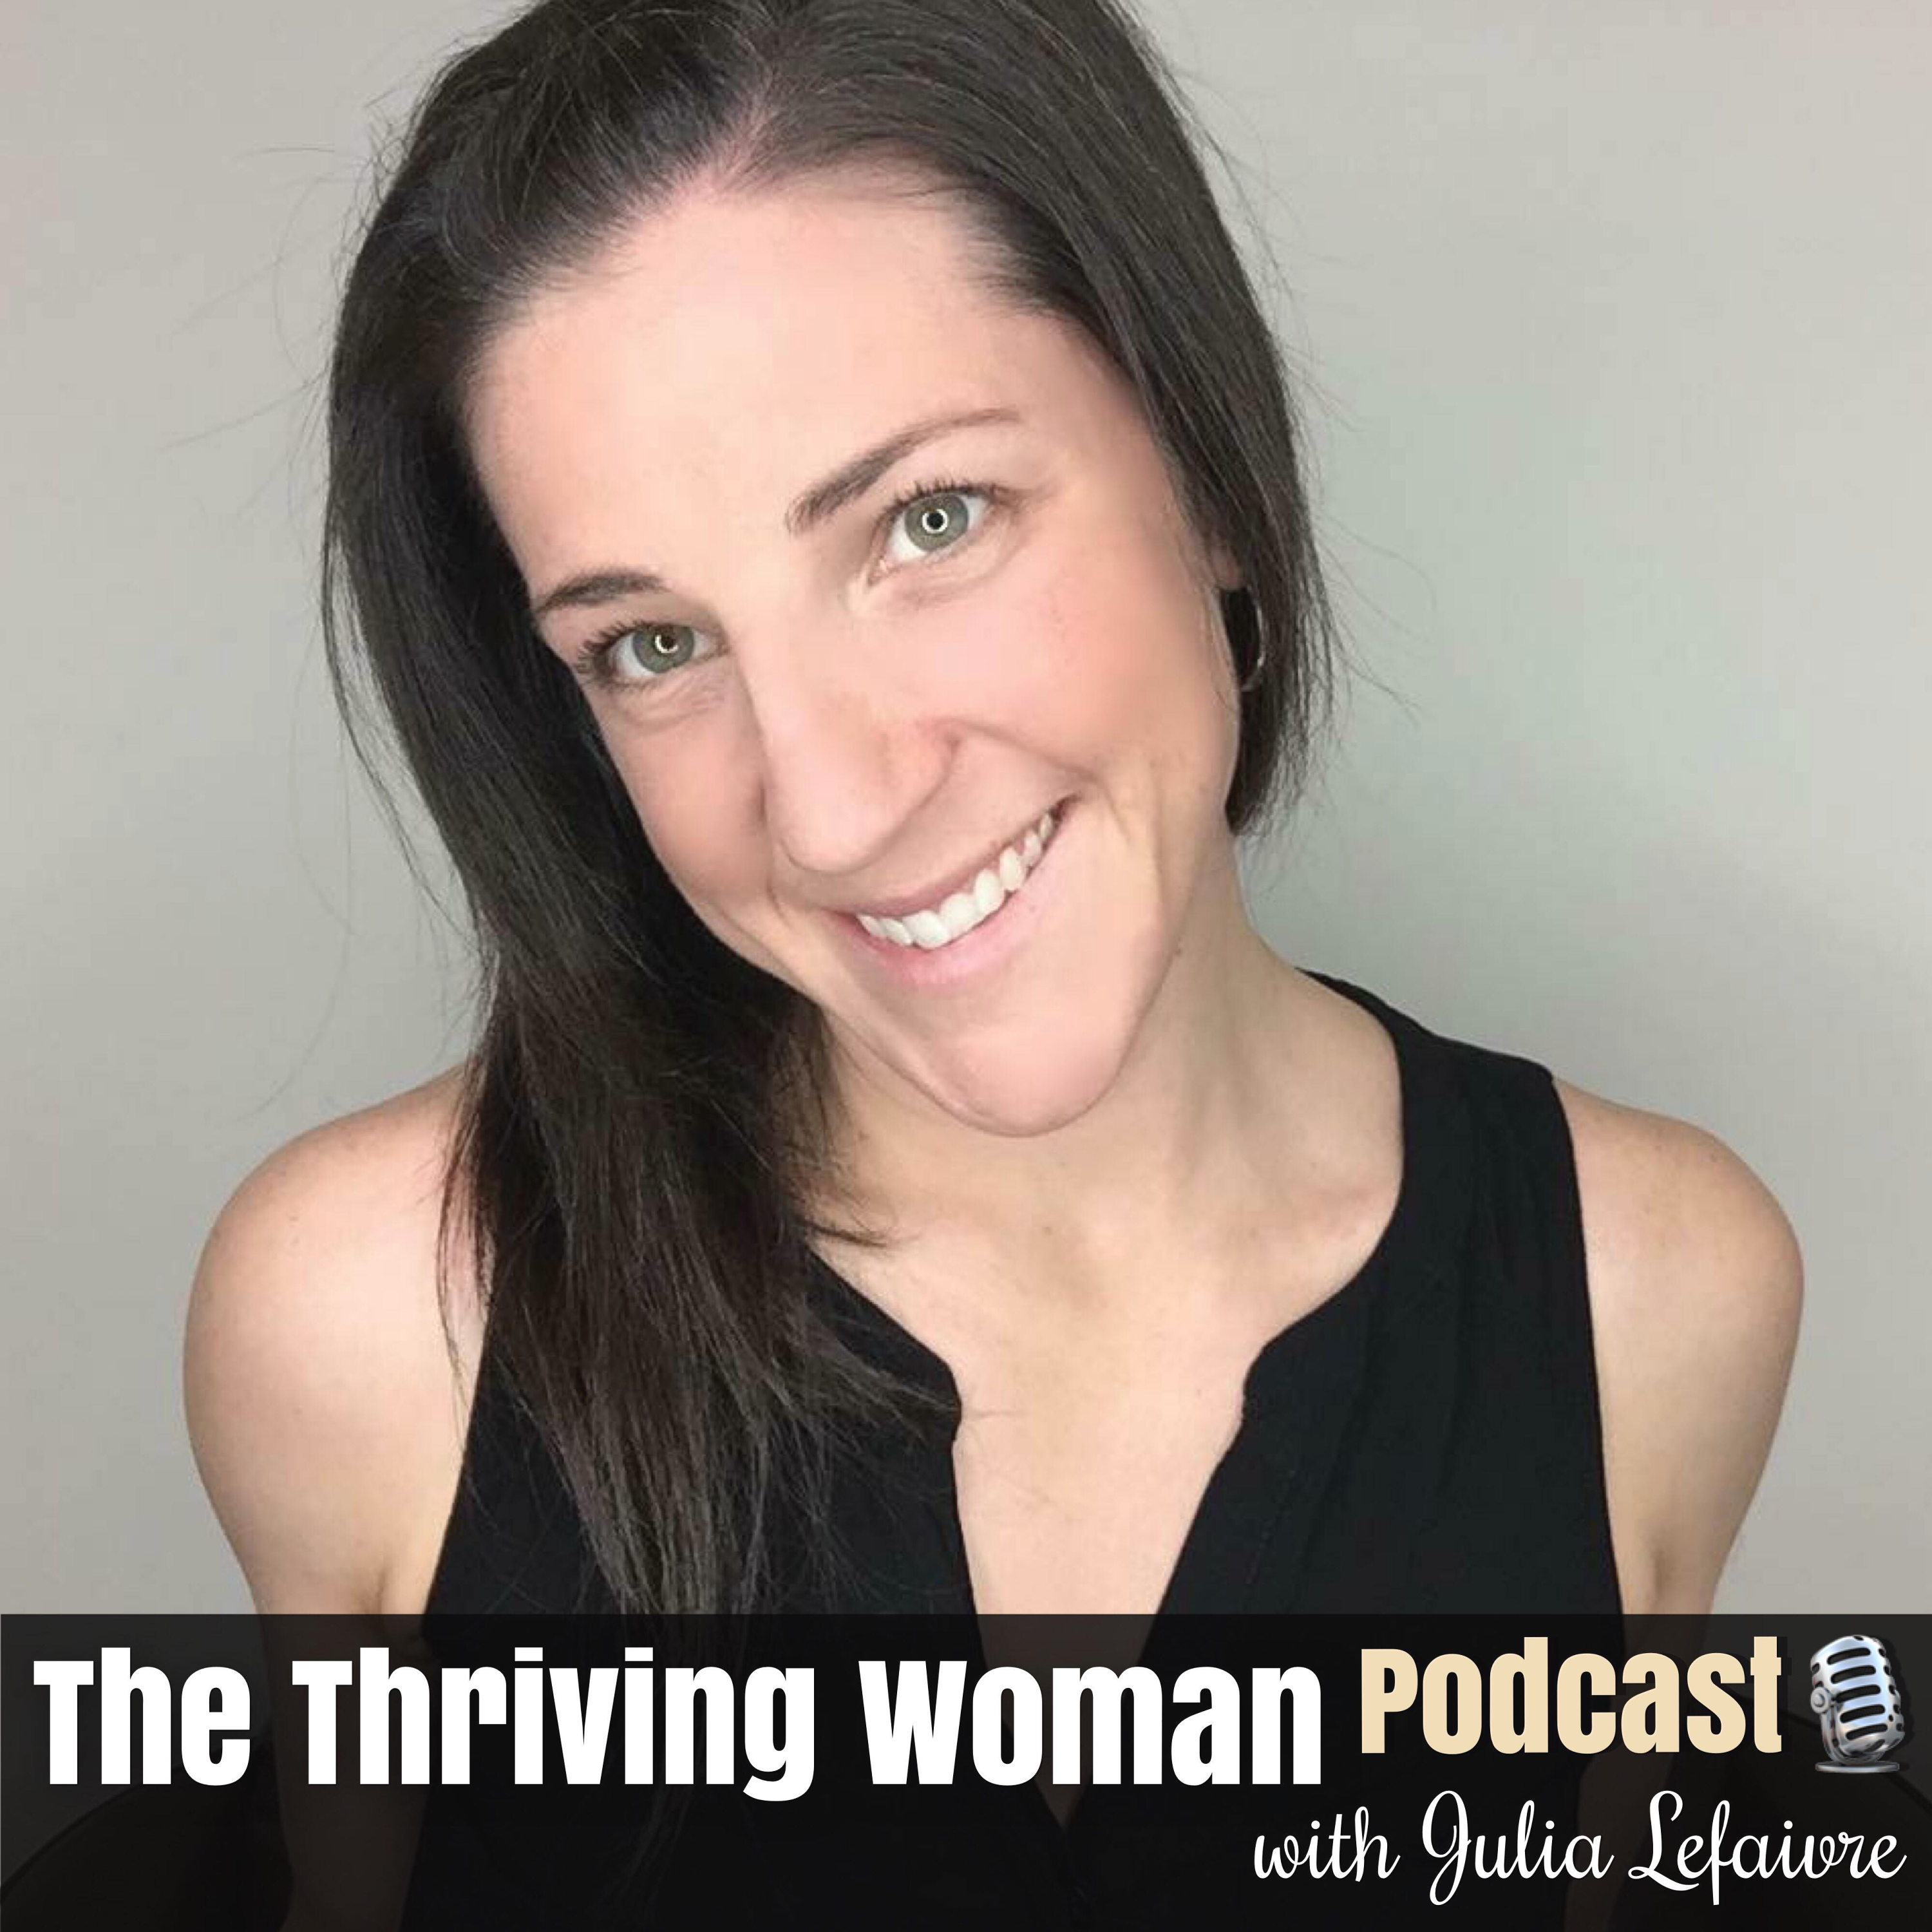 The Thriving Woman